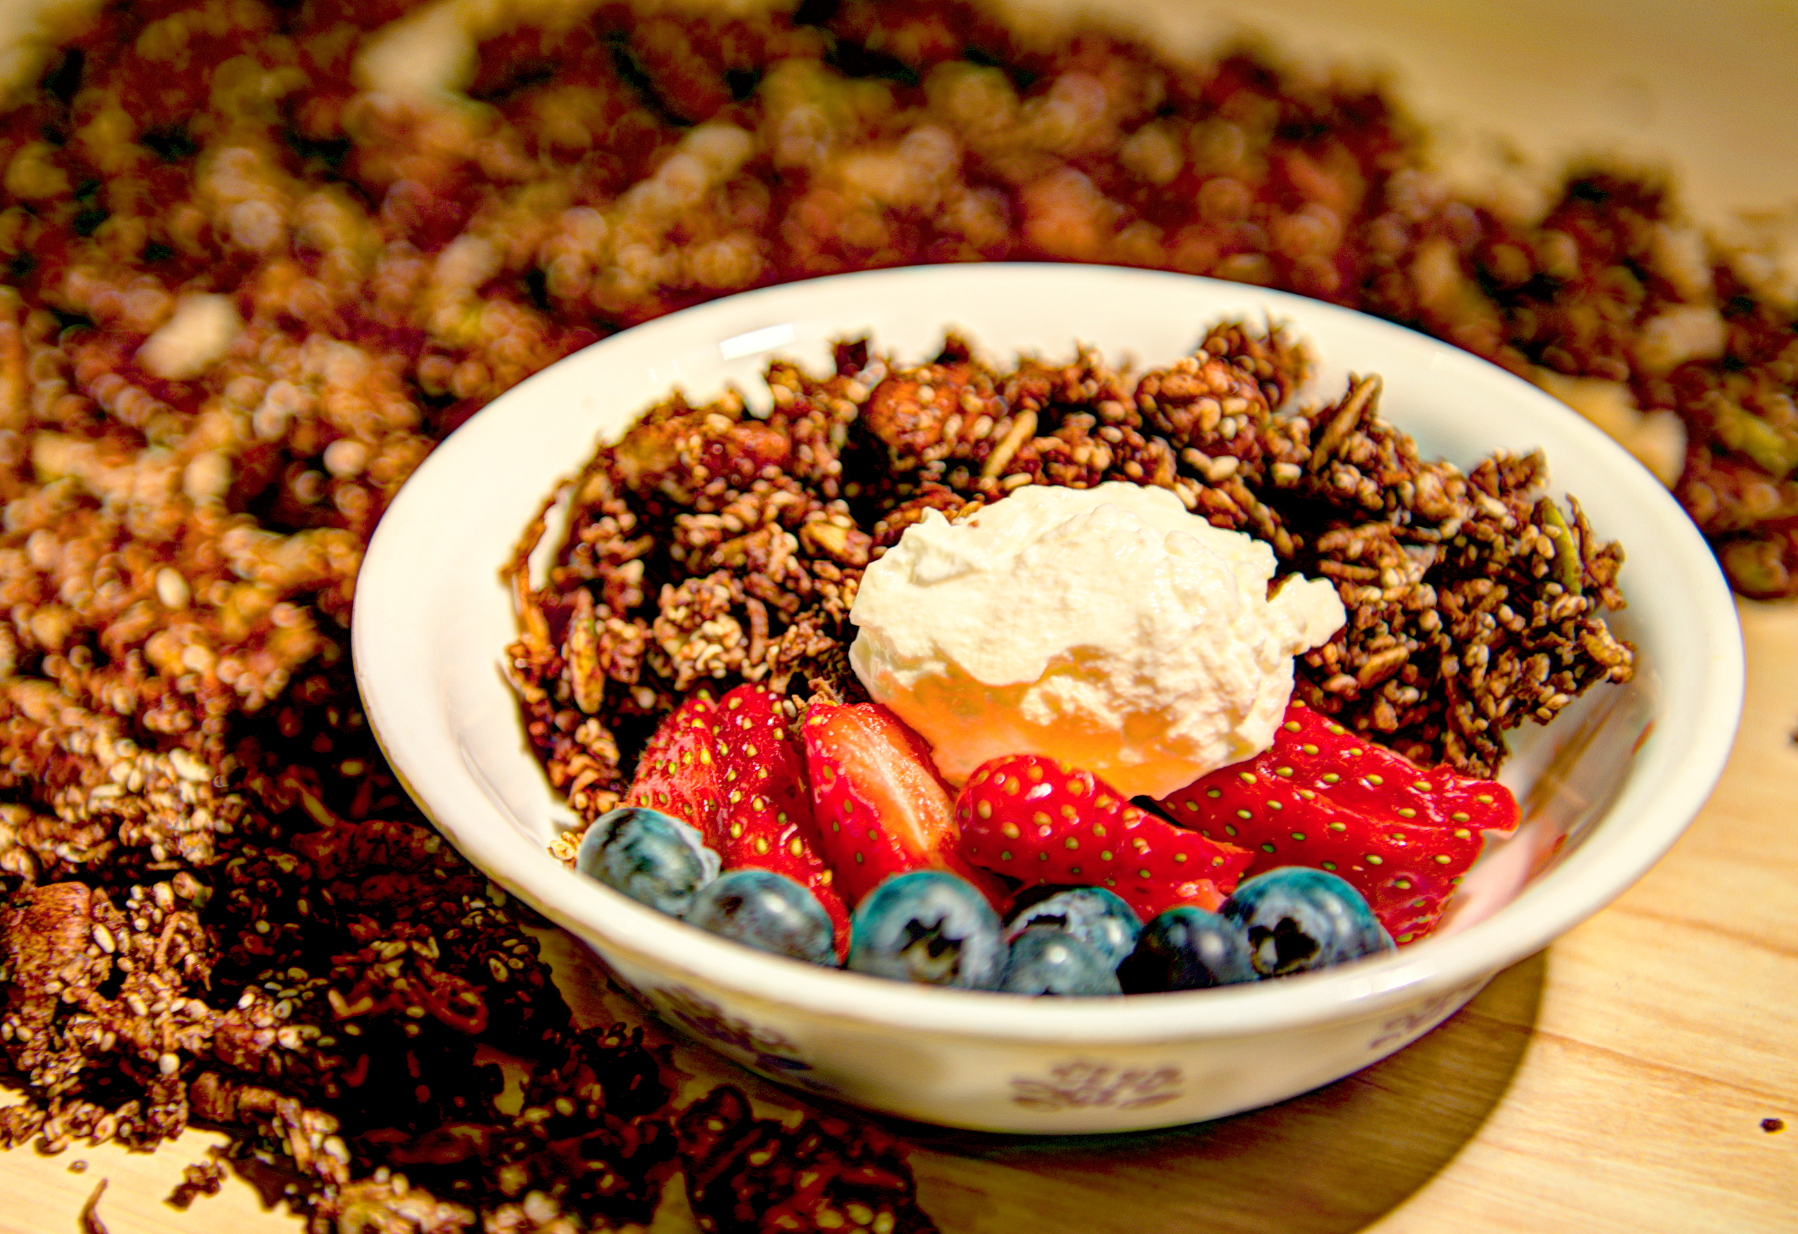 Recipe of the week: Cinnamon & Cacao Granola